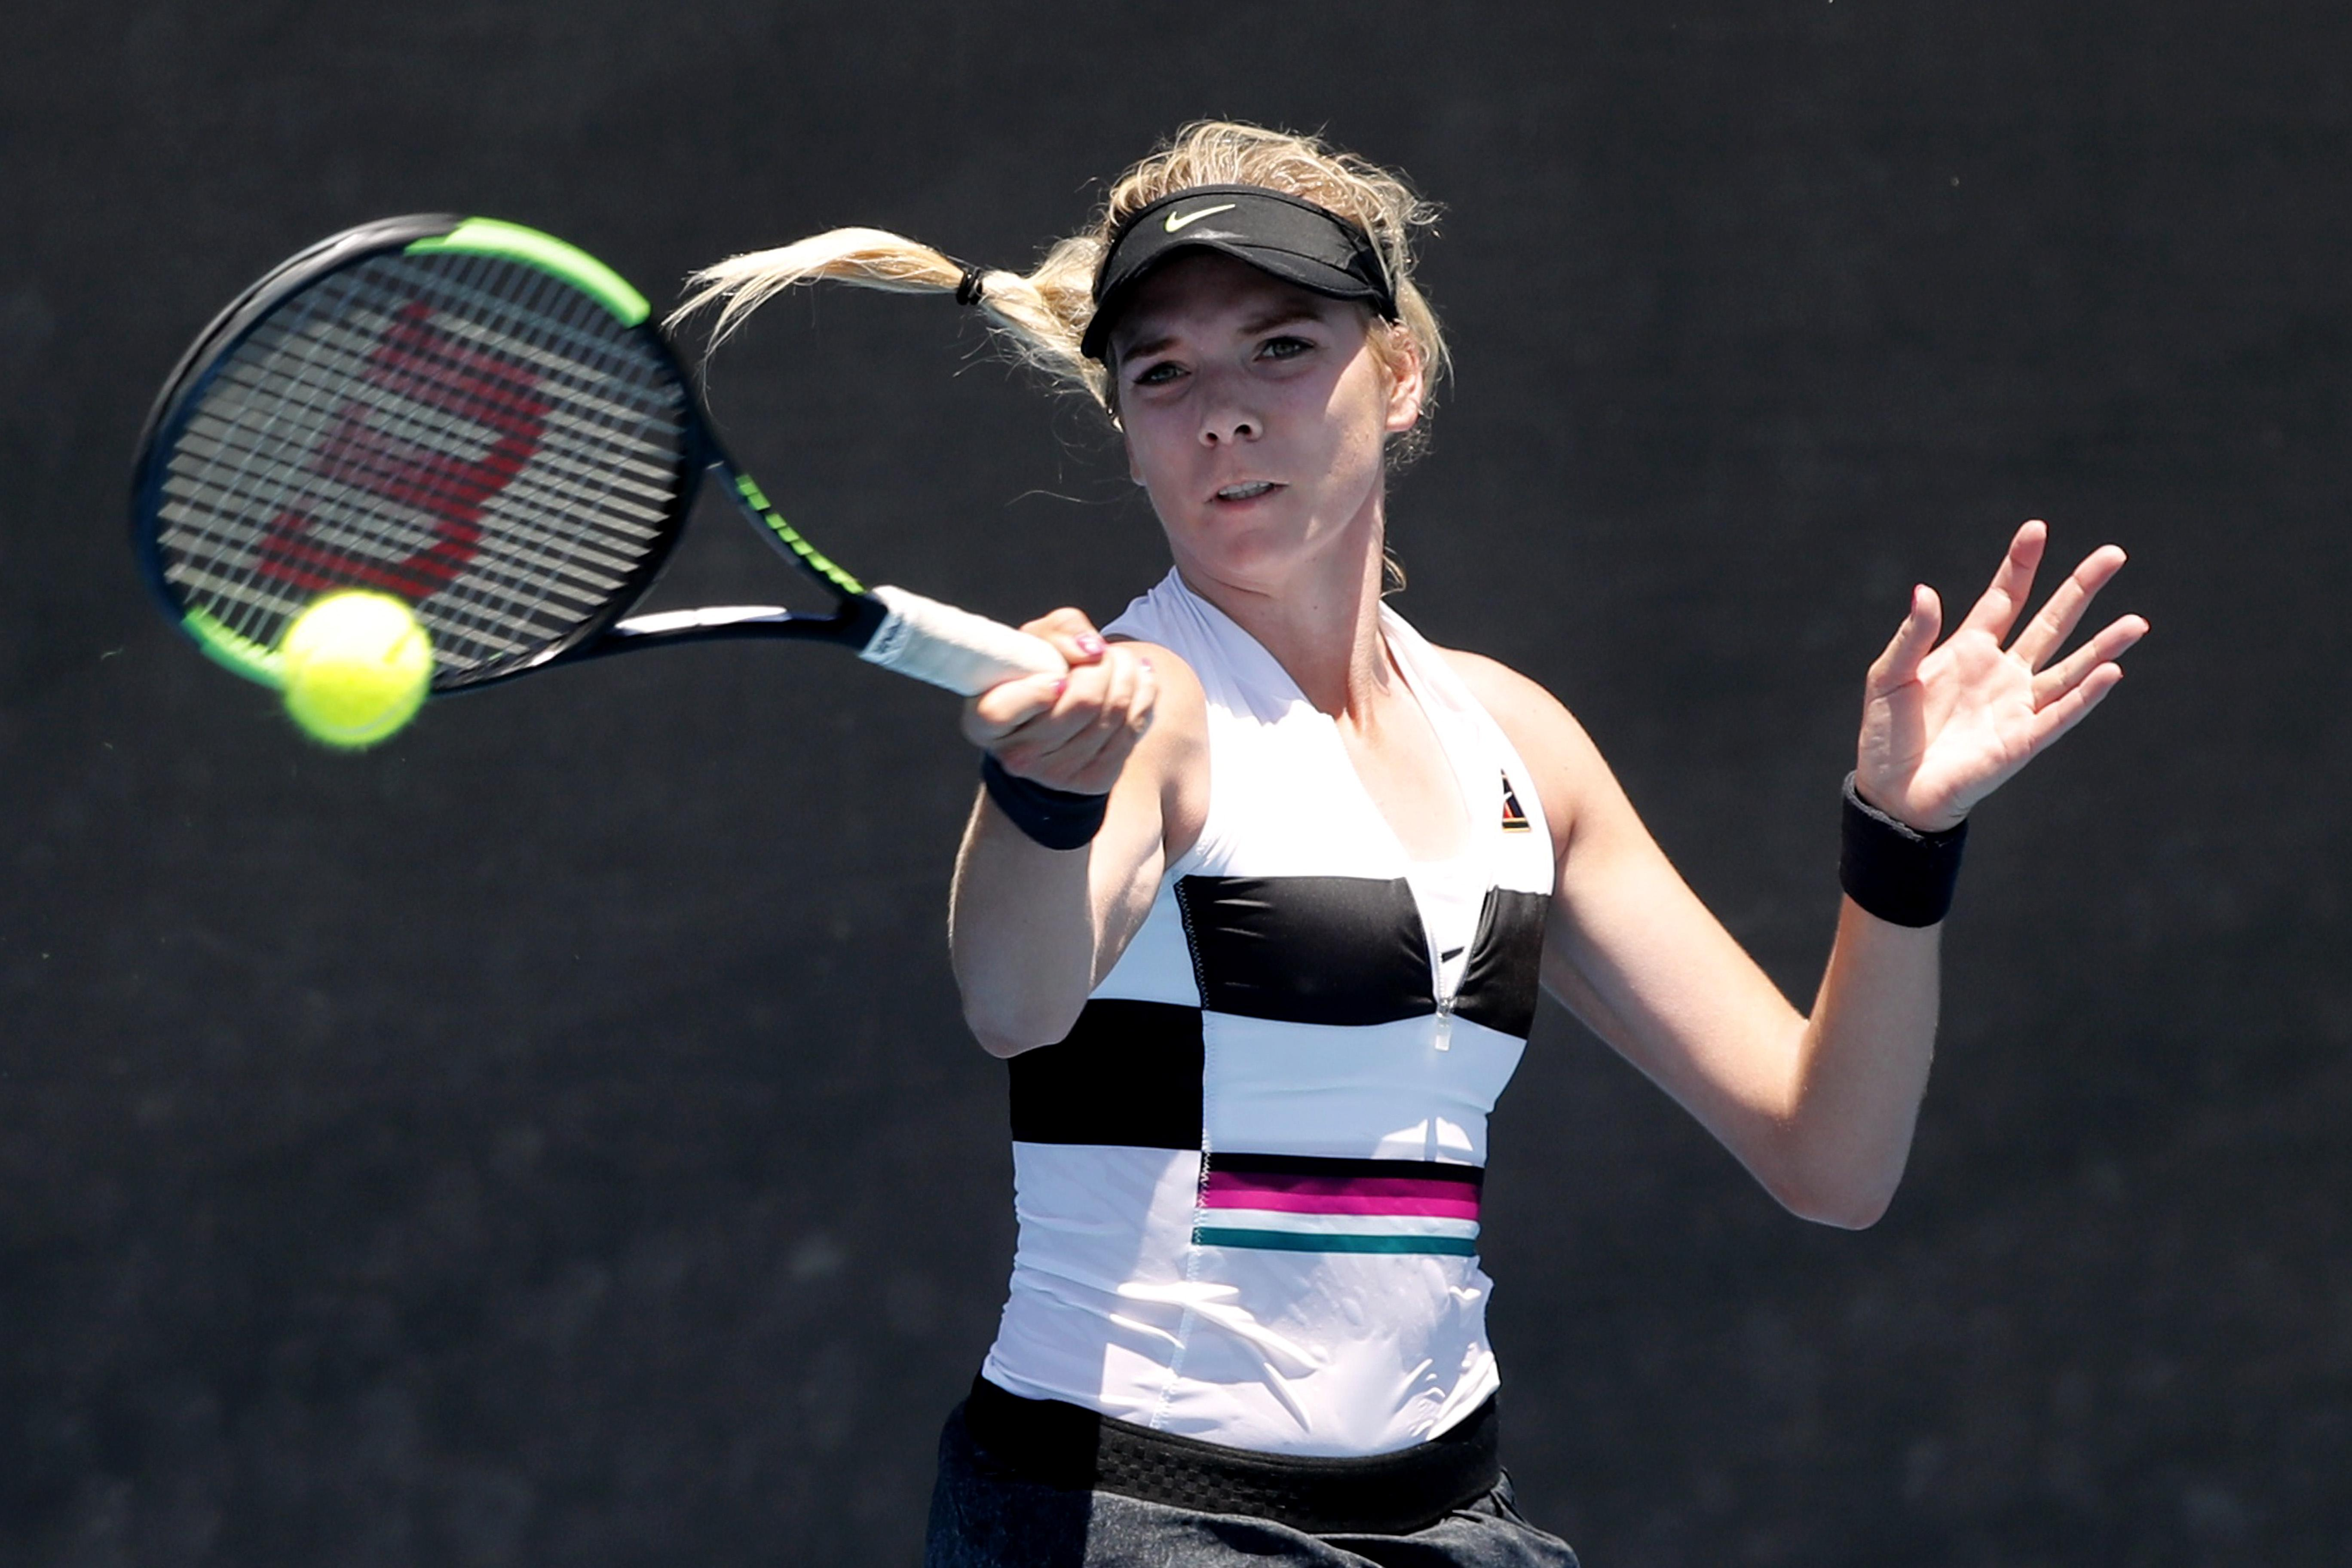 Tennis: Boulter wins deciding set shootout after premature celebration